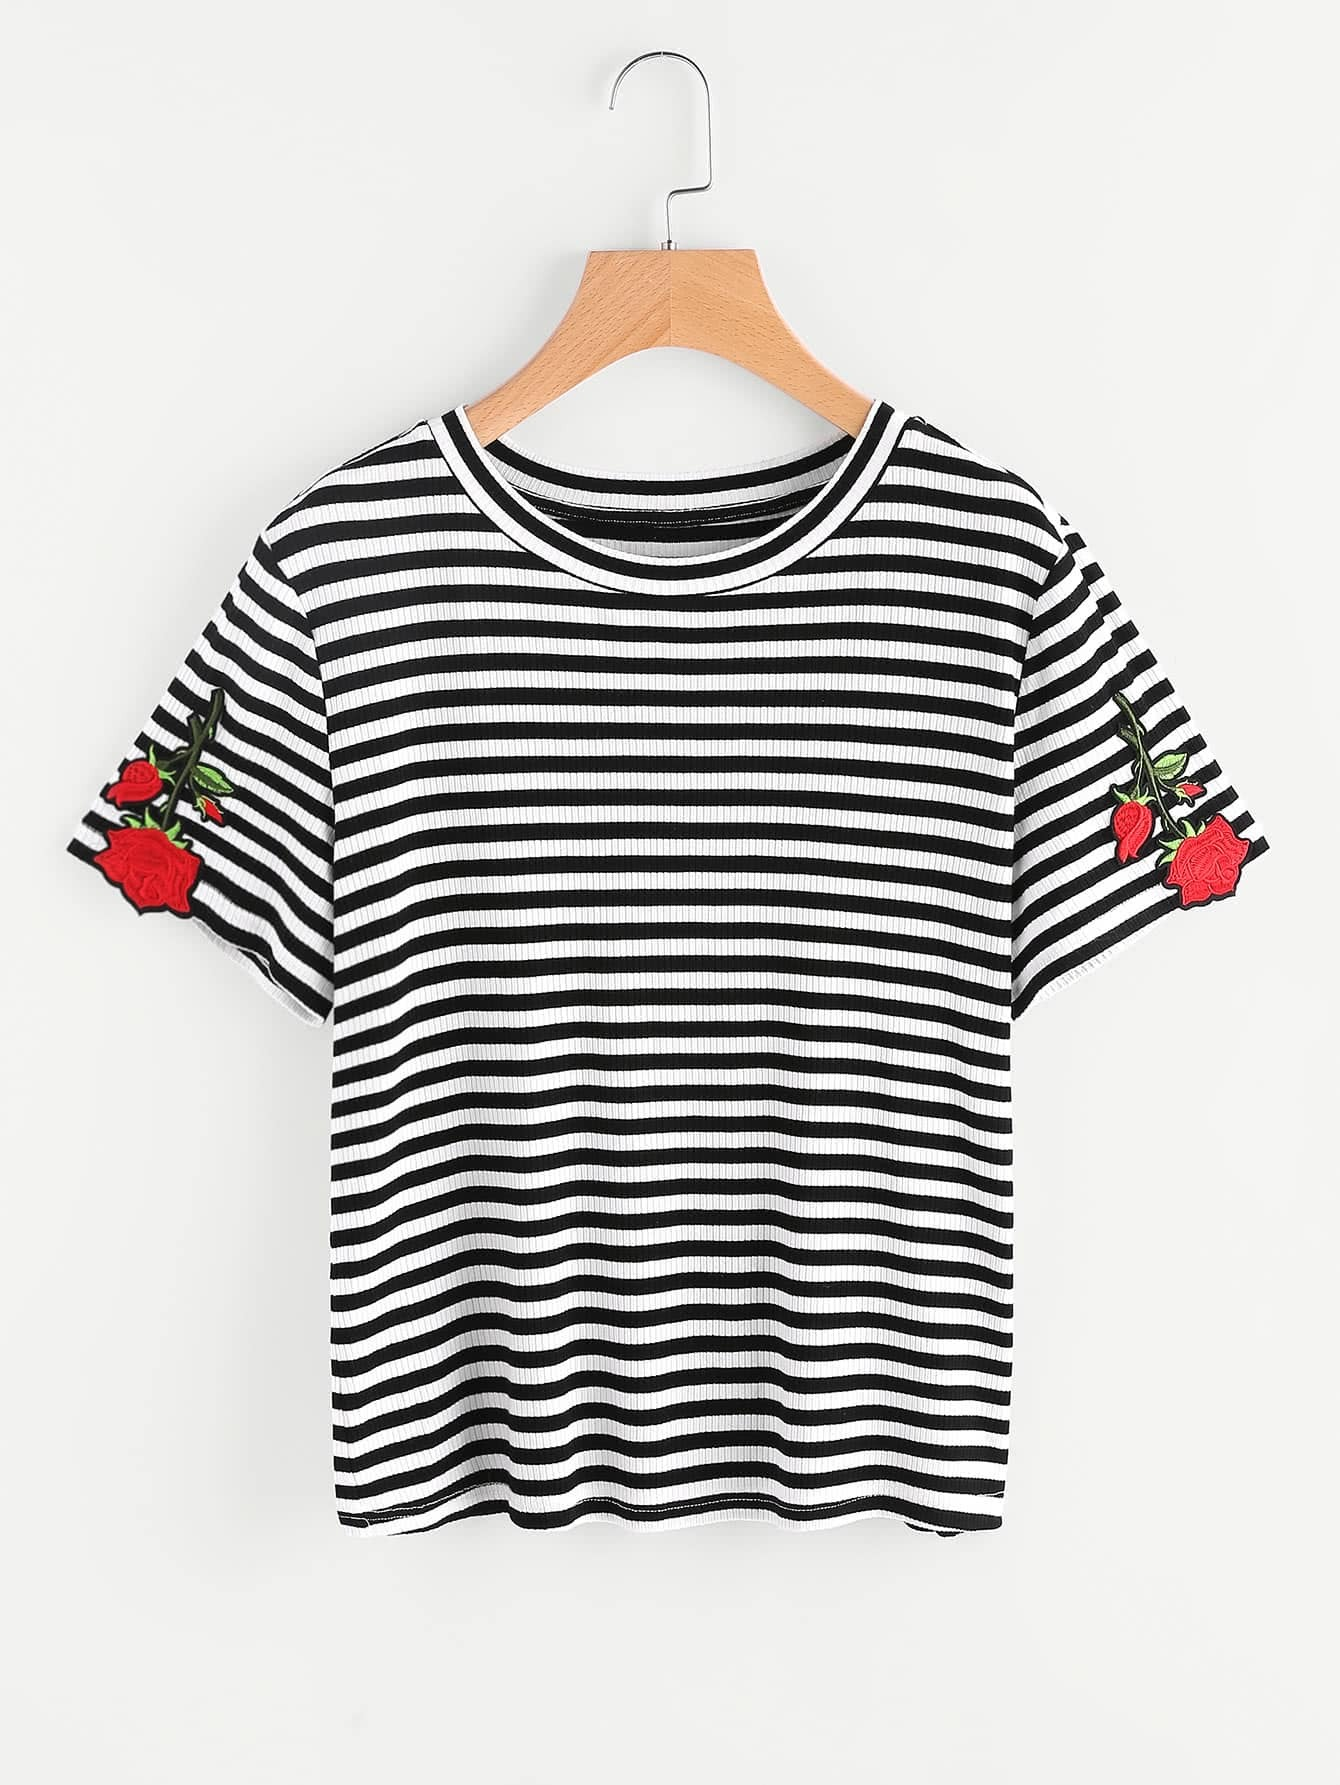 Rose Patch Rib Knit Striped Tee